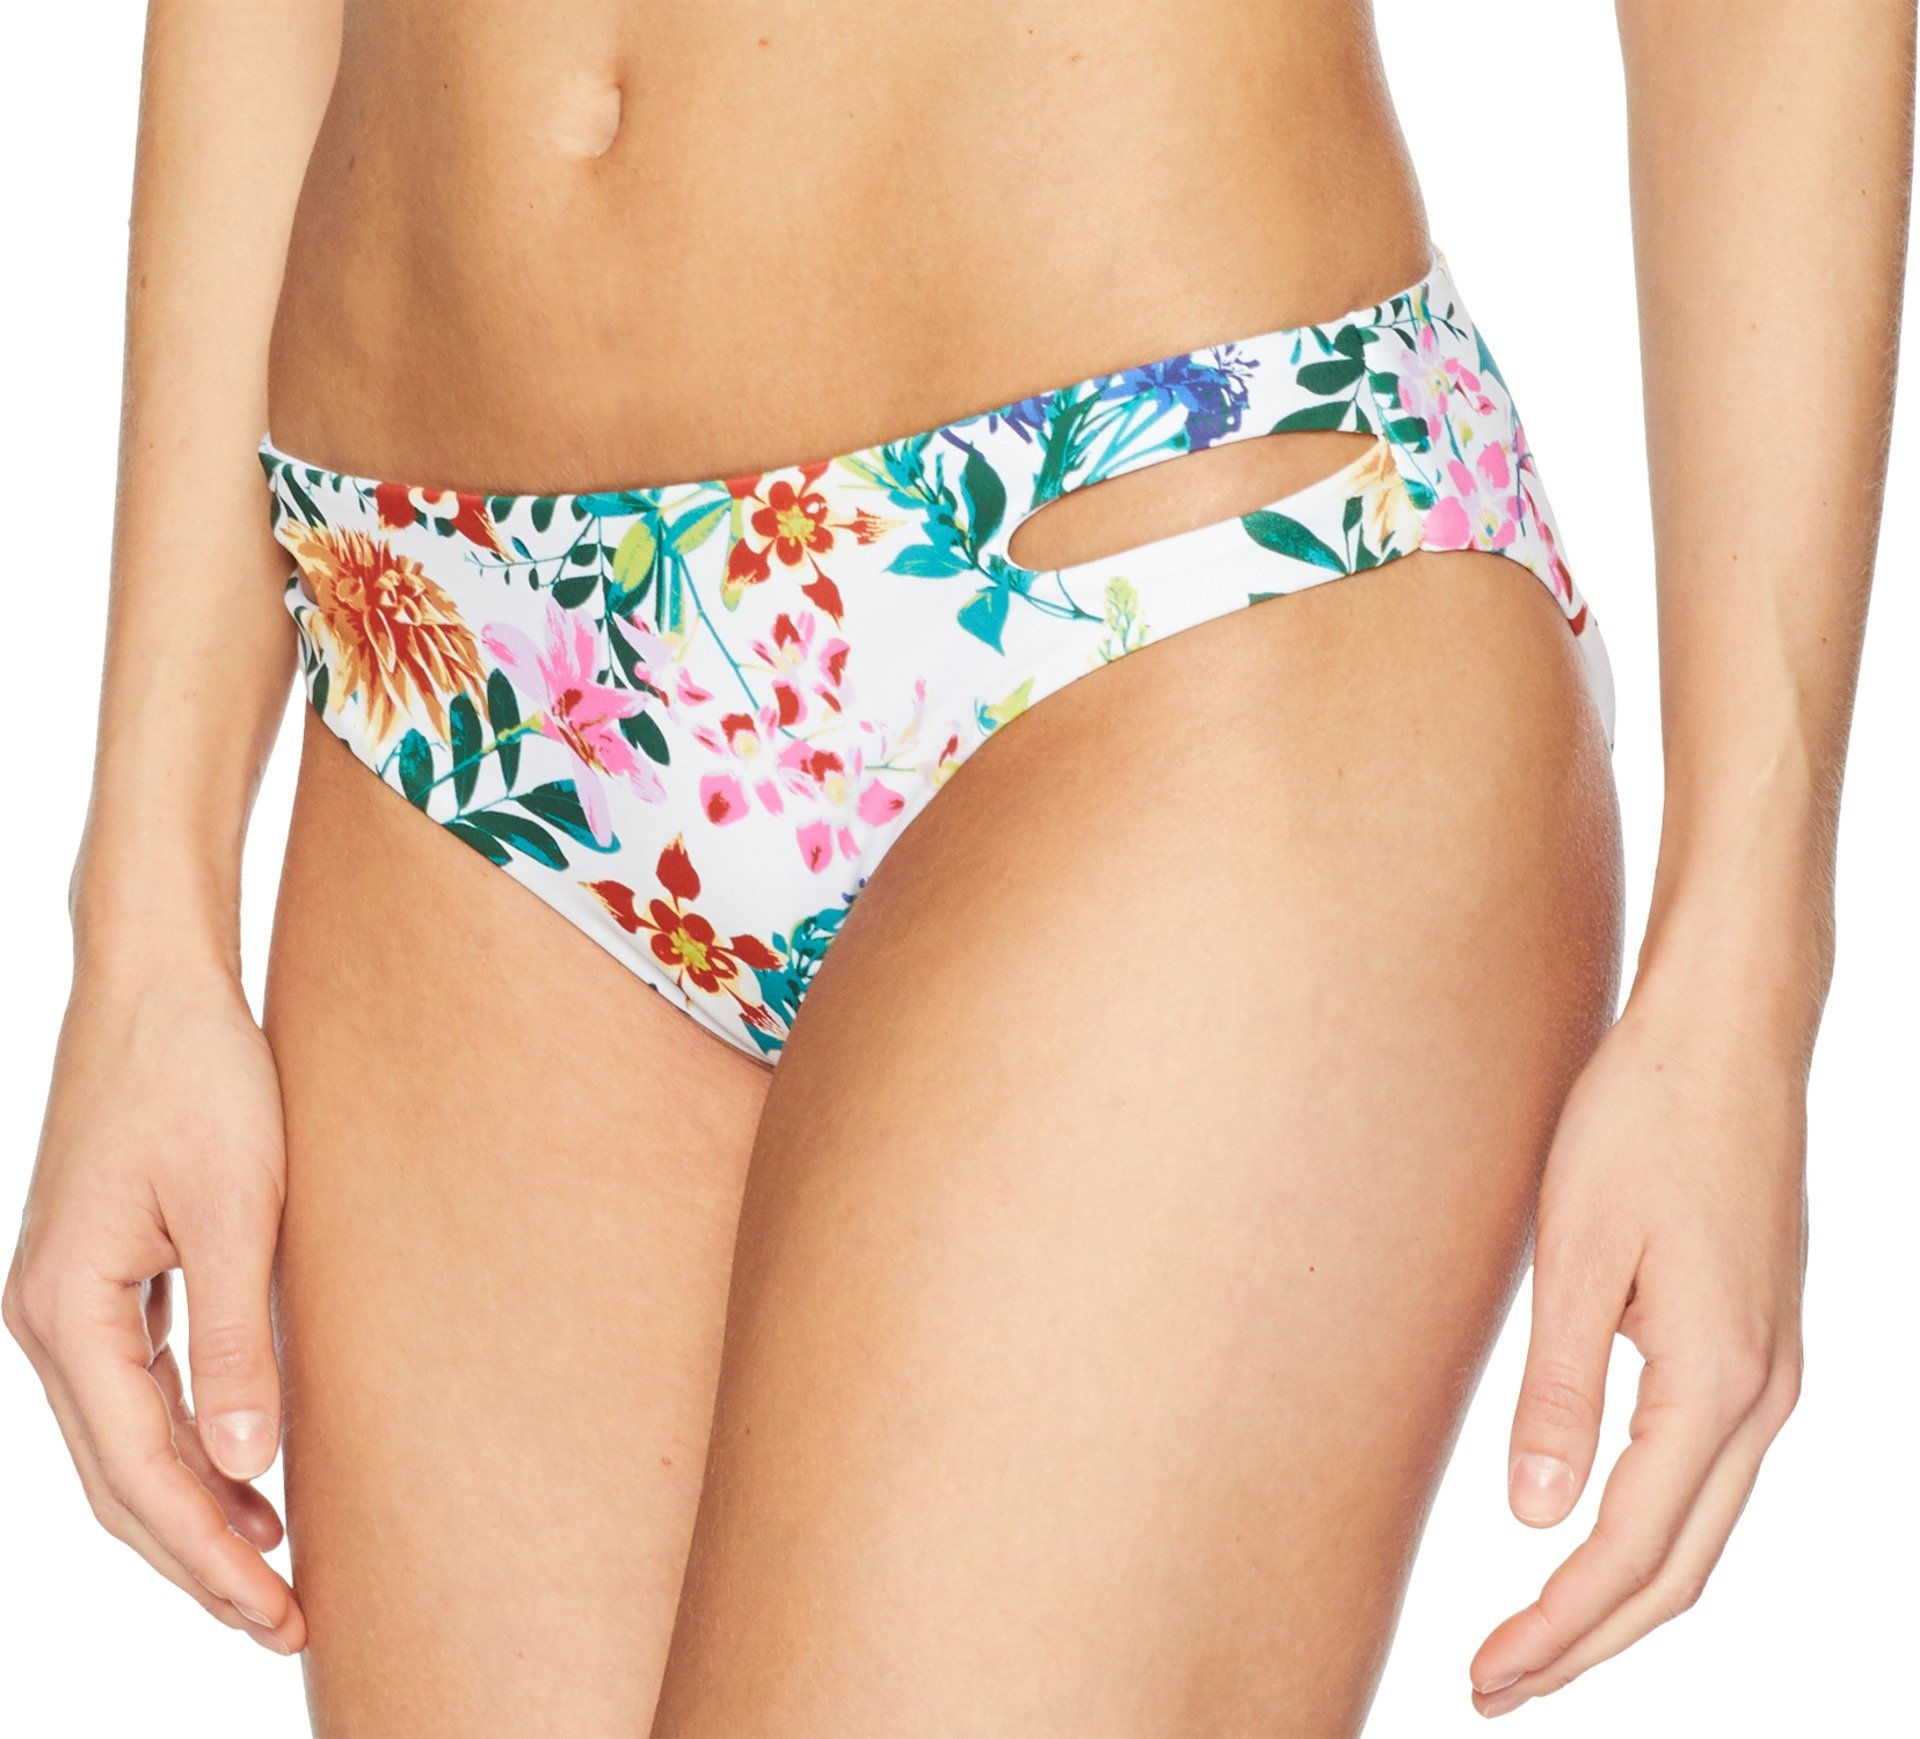 Roxy Junior's Solid Softly Love Reversible 70s Bikini Bottom, Bright White Floral Soiree, S by Roxy (Image #2)